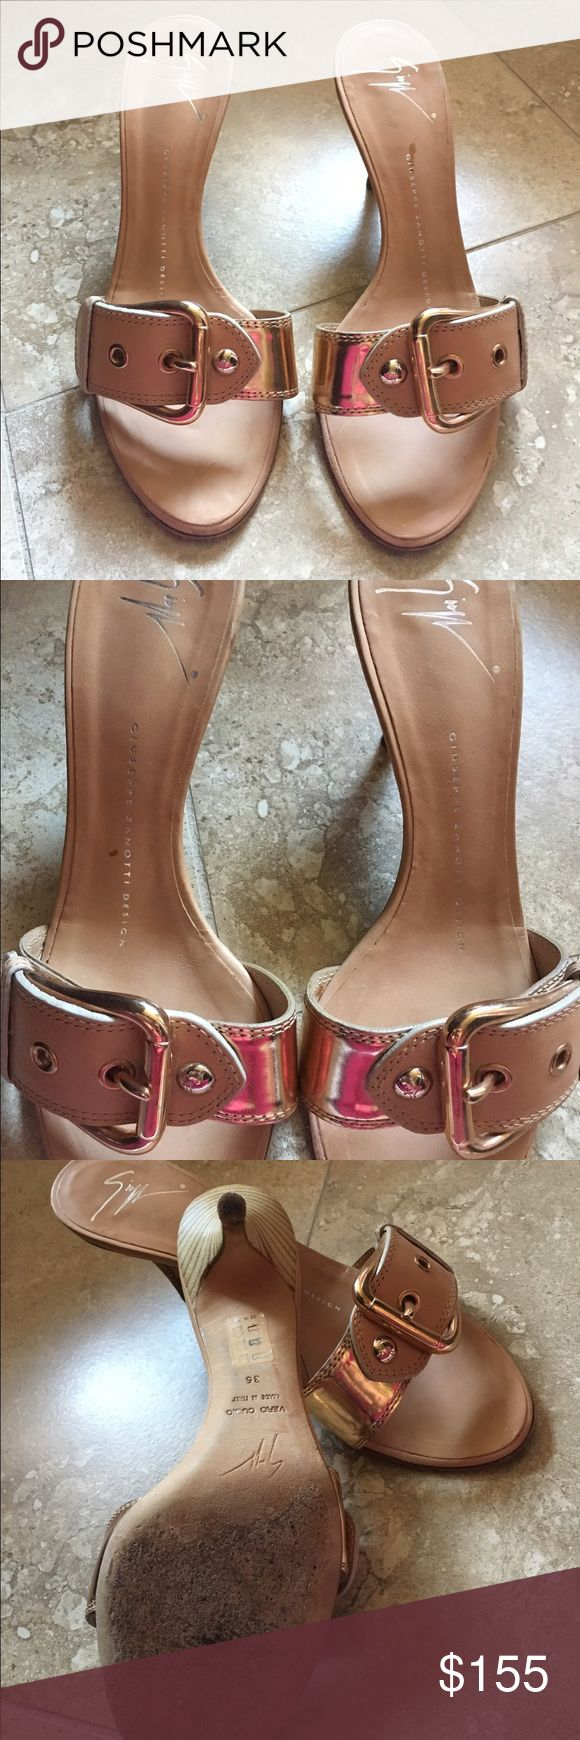 Authentic Giuseppe Zanotti heels In great preowned condition. Absolutely beautiful Giuseppe heels Giuseppe Zanotti Shoes Heels